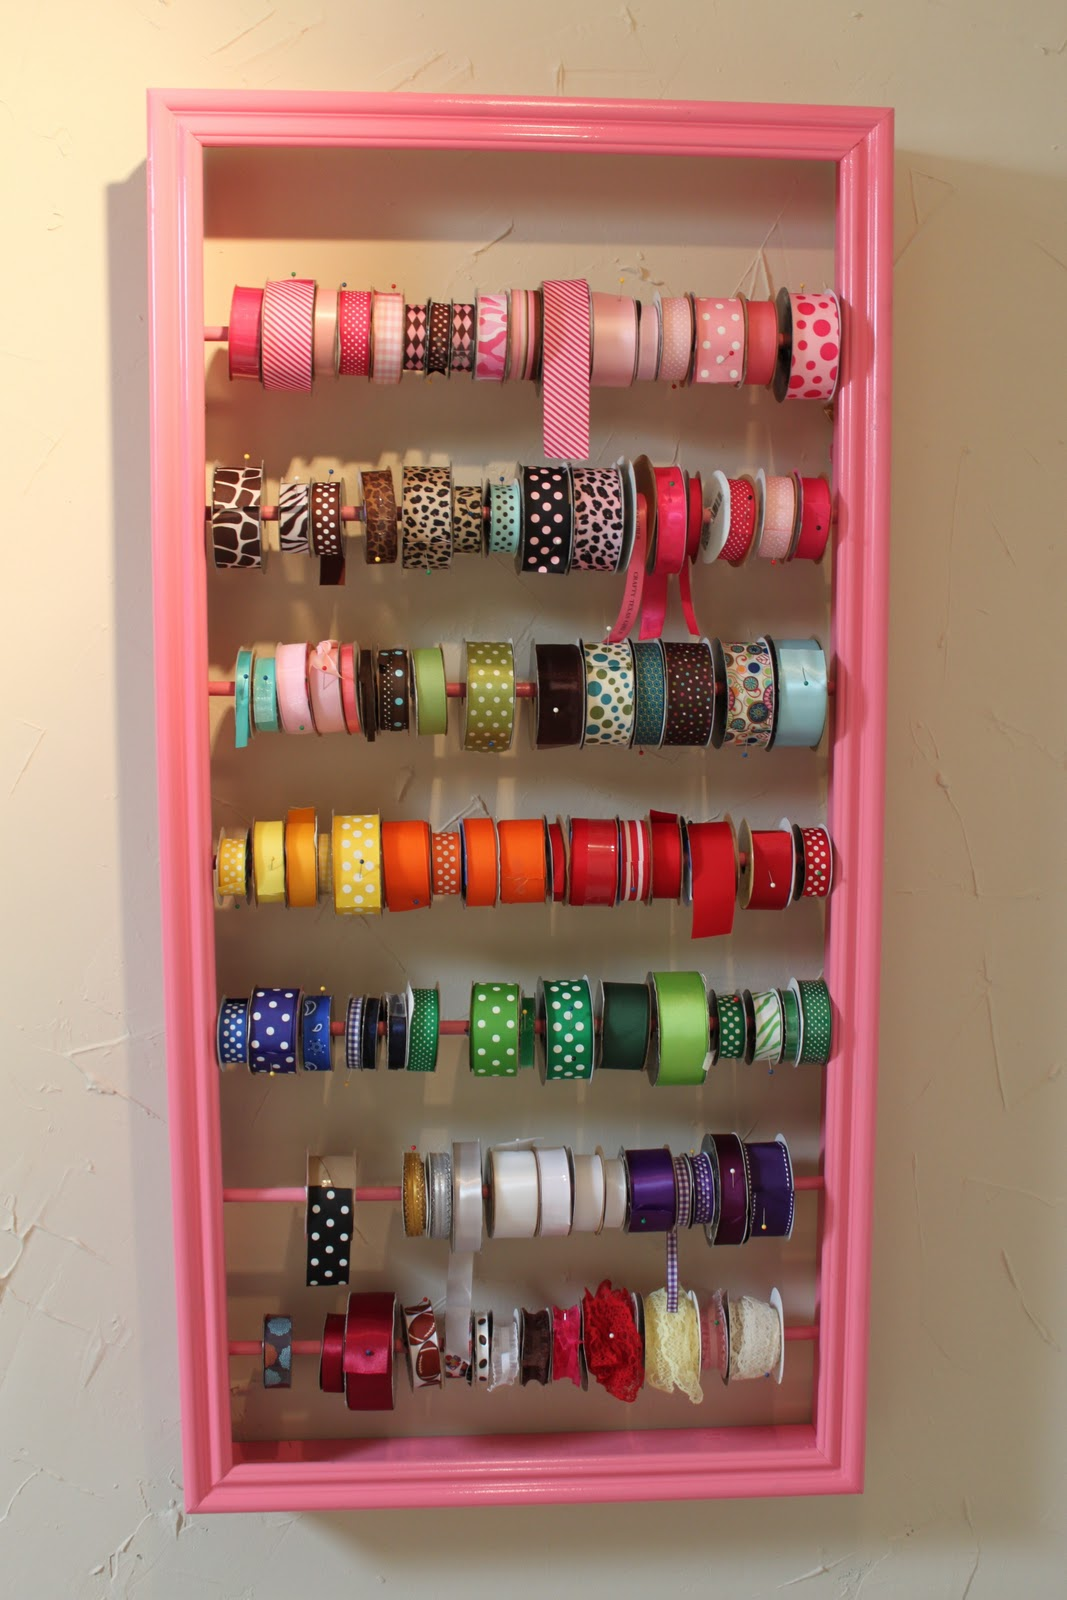 Things to make for your room - My Crafty Room Crafty Texas Girls My Crafty Room